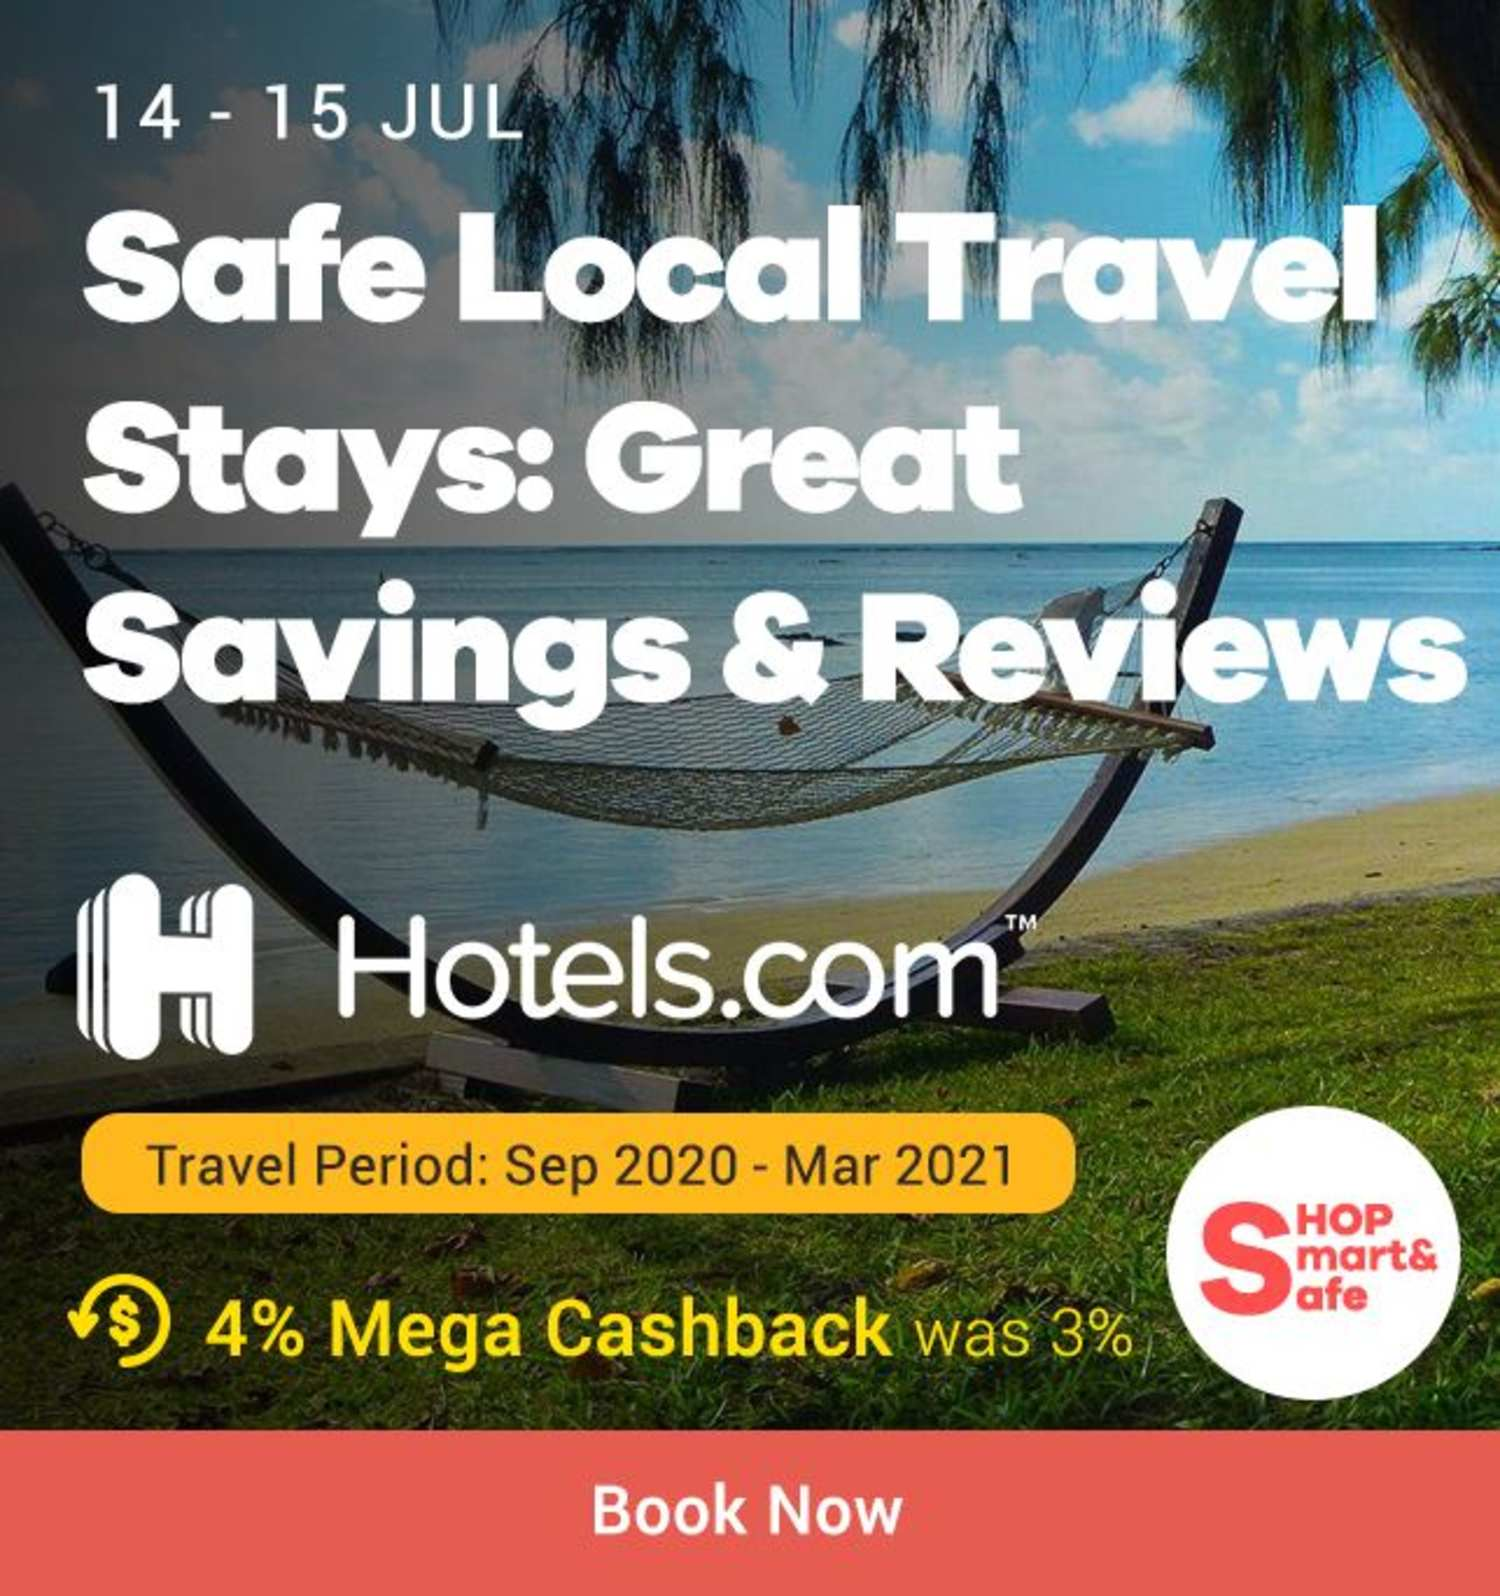 Hotels.com: Safe Local Travel Stays Great Savings & Reviews